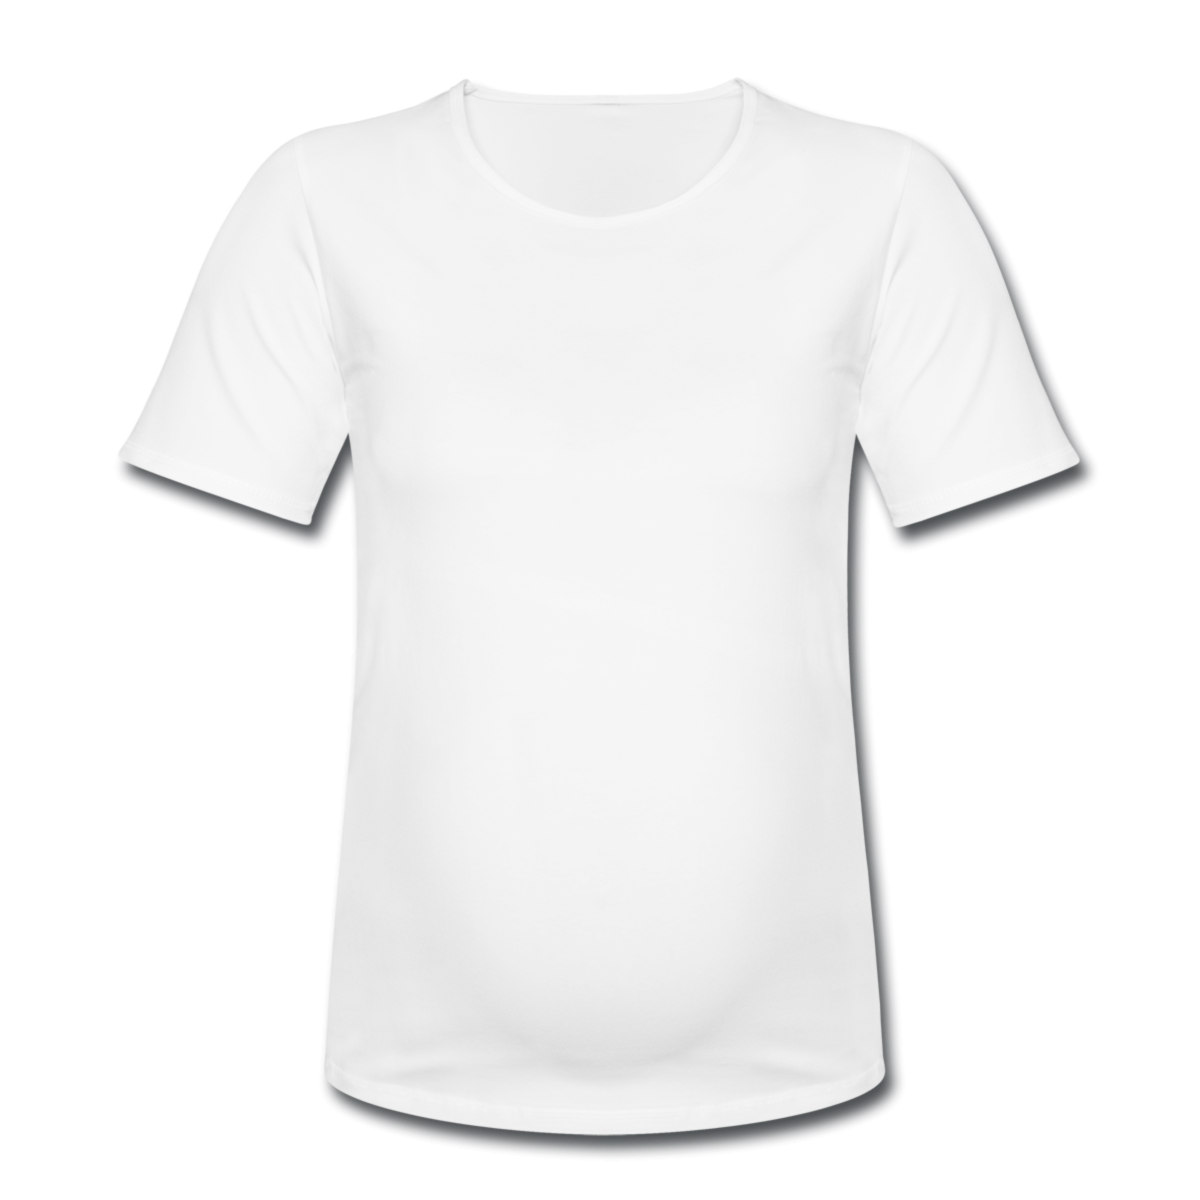 White Blank T Shirt - ClipArt Best